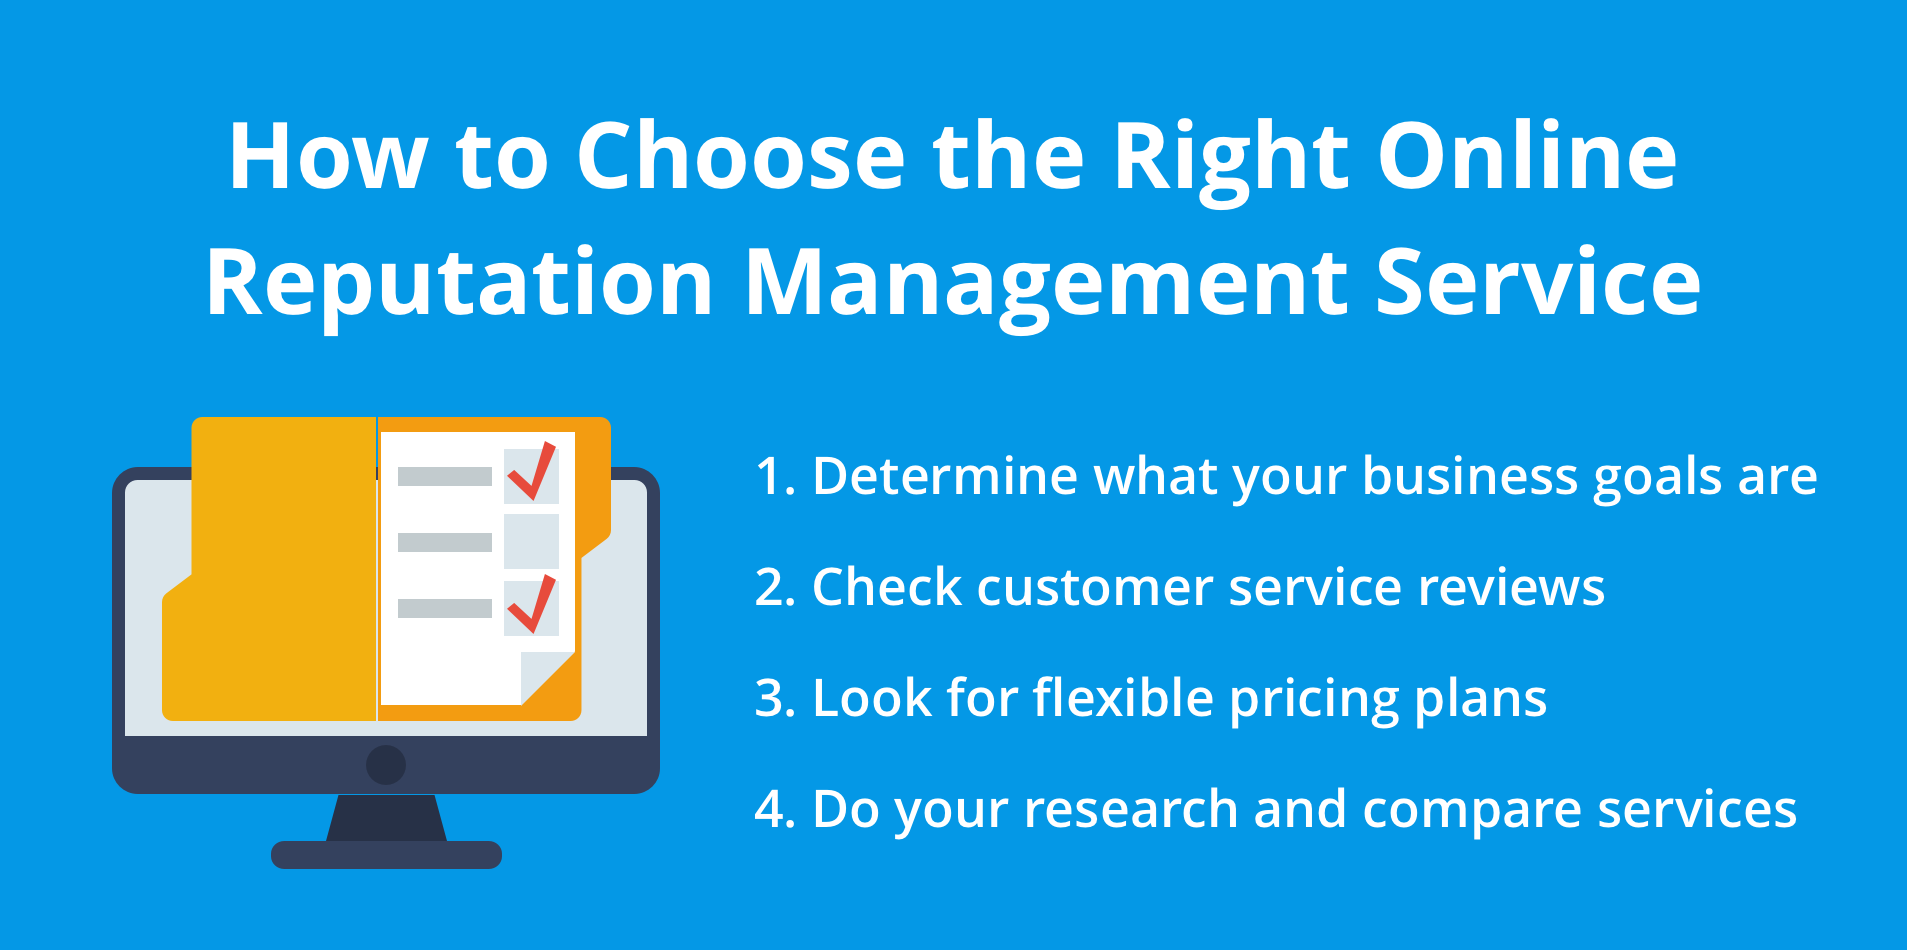 Finding the Perfect Reputation Management Service for Your Business